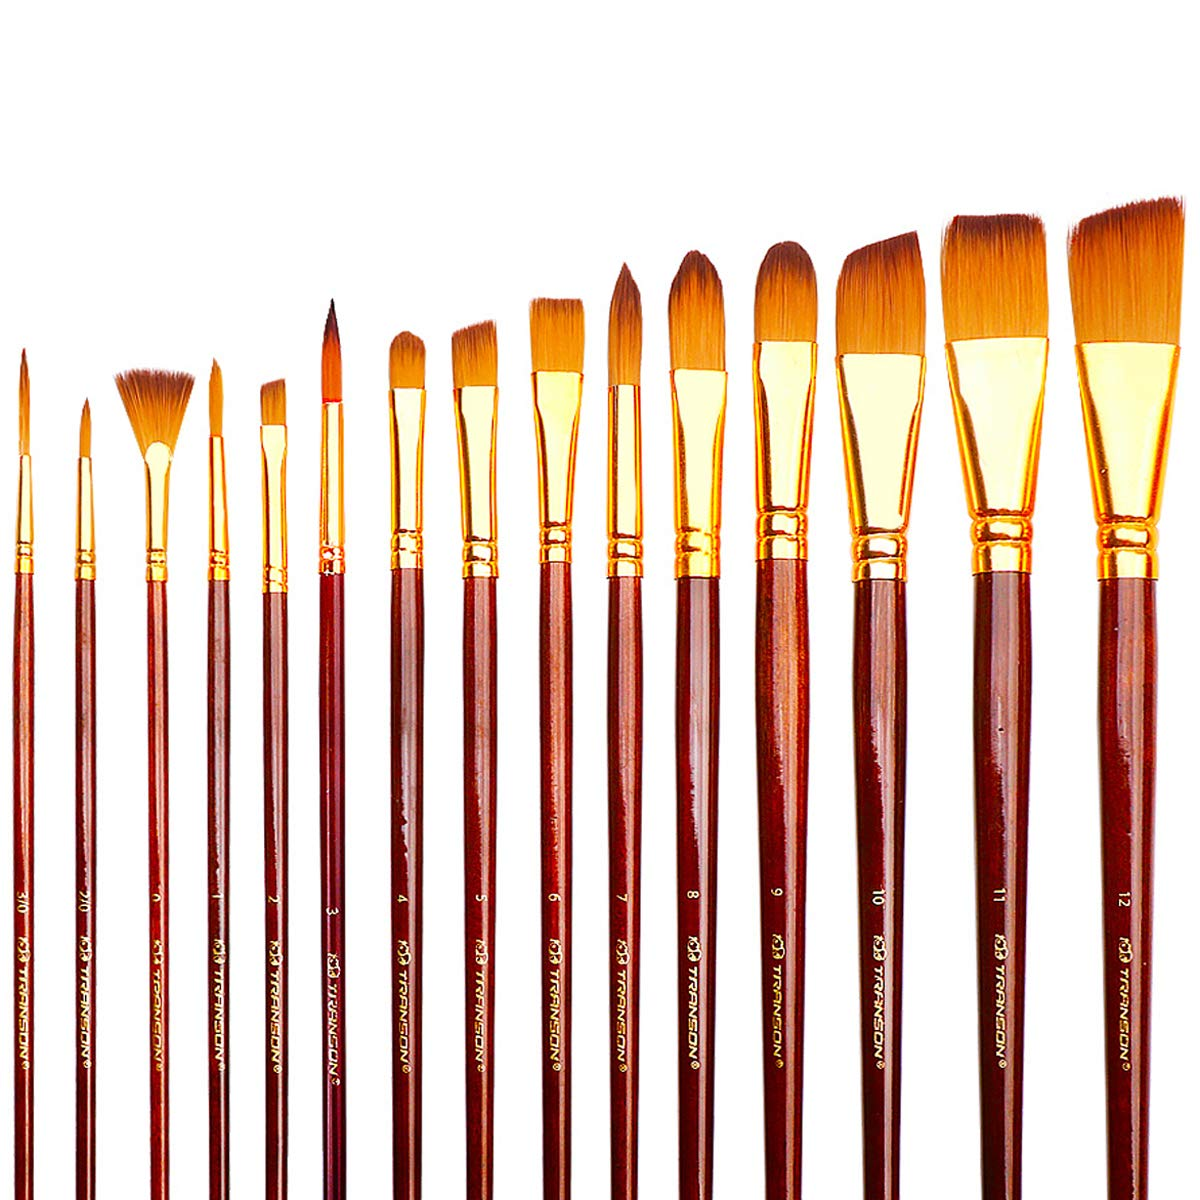 Transon Professional Art Paint Brush Set with Case 15pcs for Artists Watercolor, Acrylic, Gouache, Oil Painting, Tempera and Body Painting